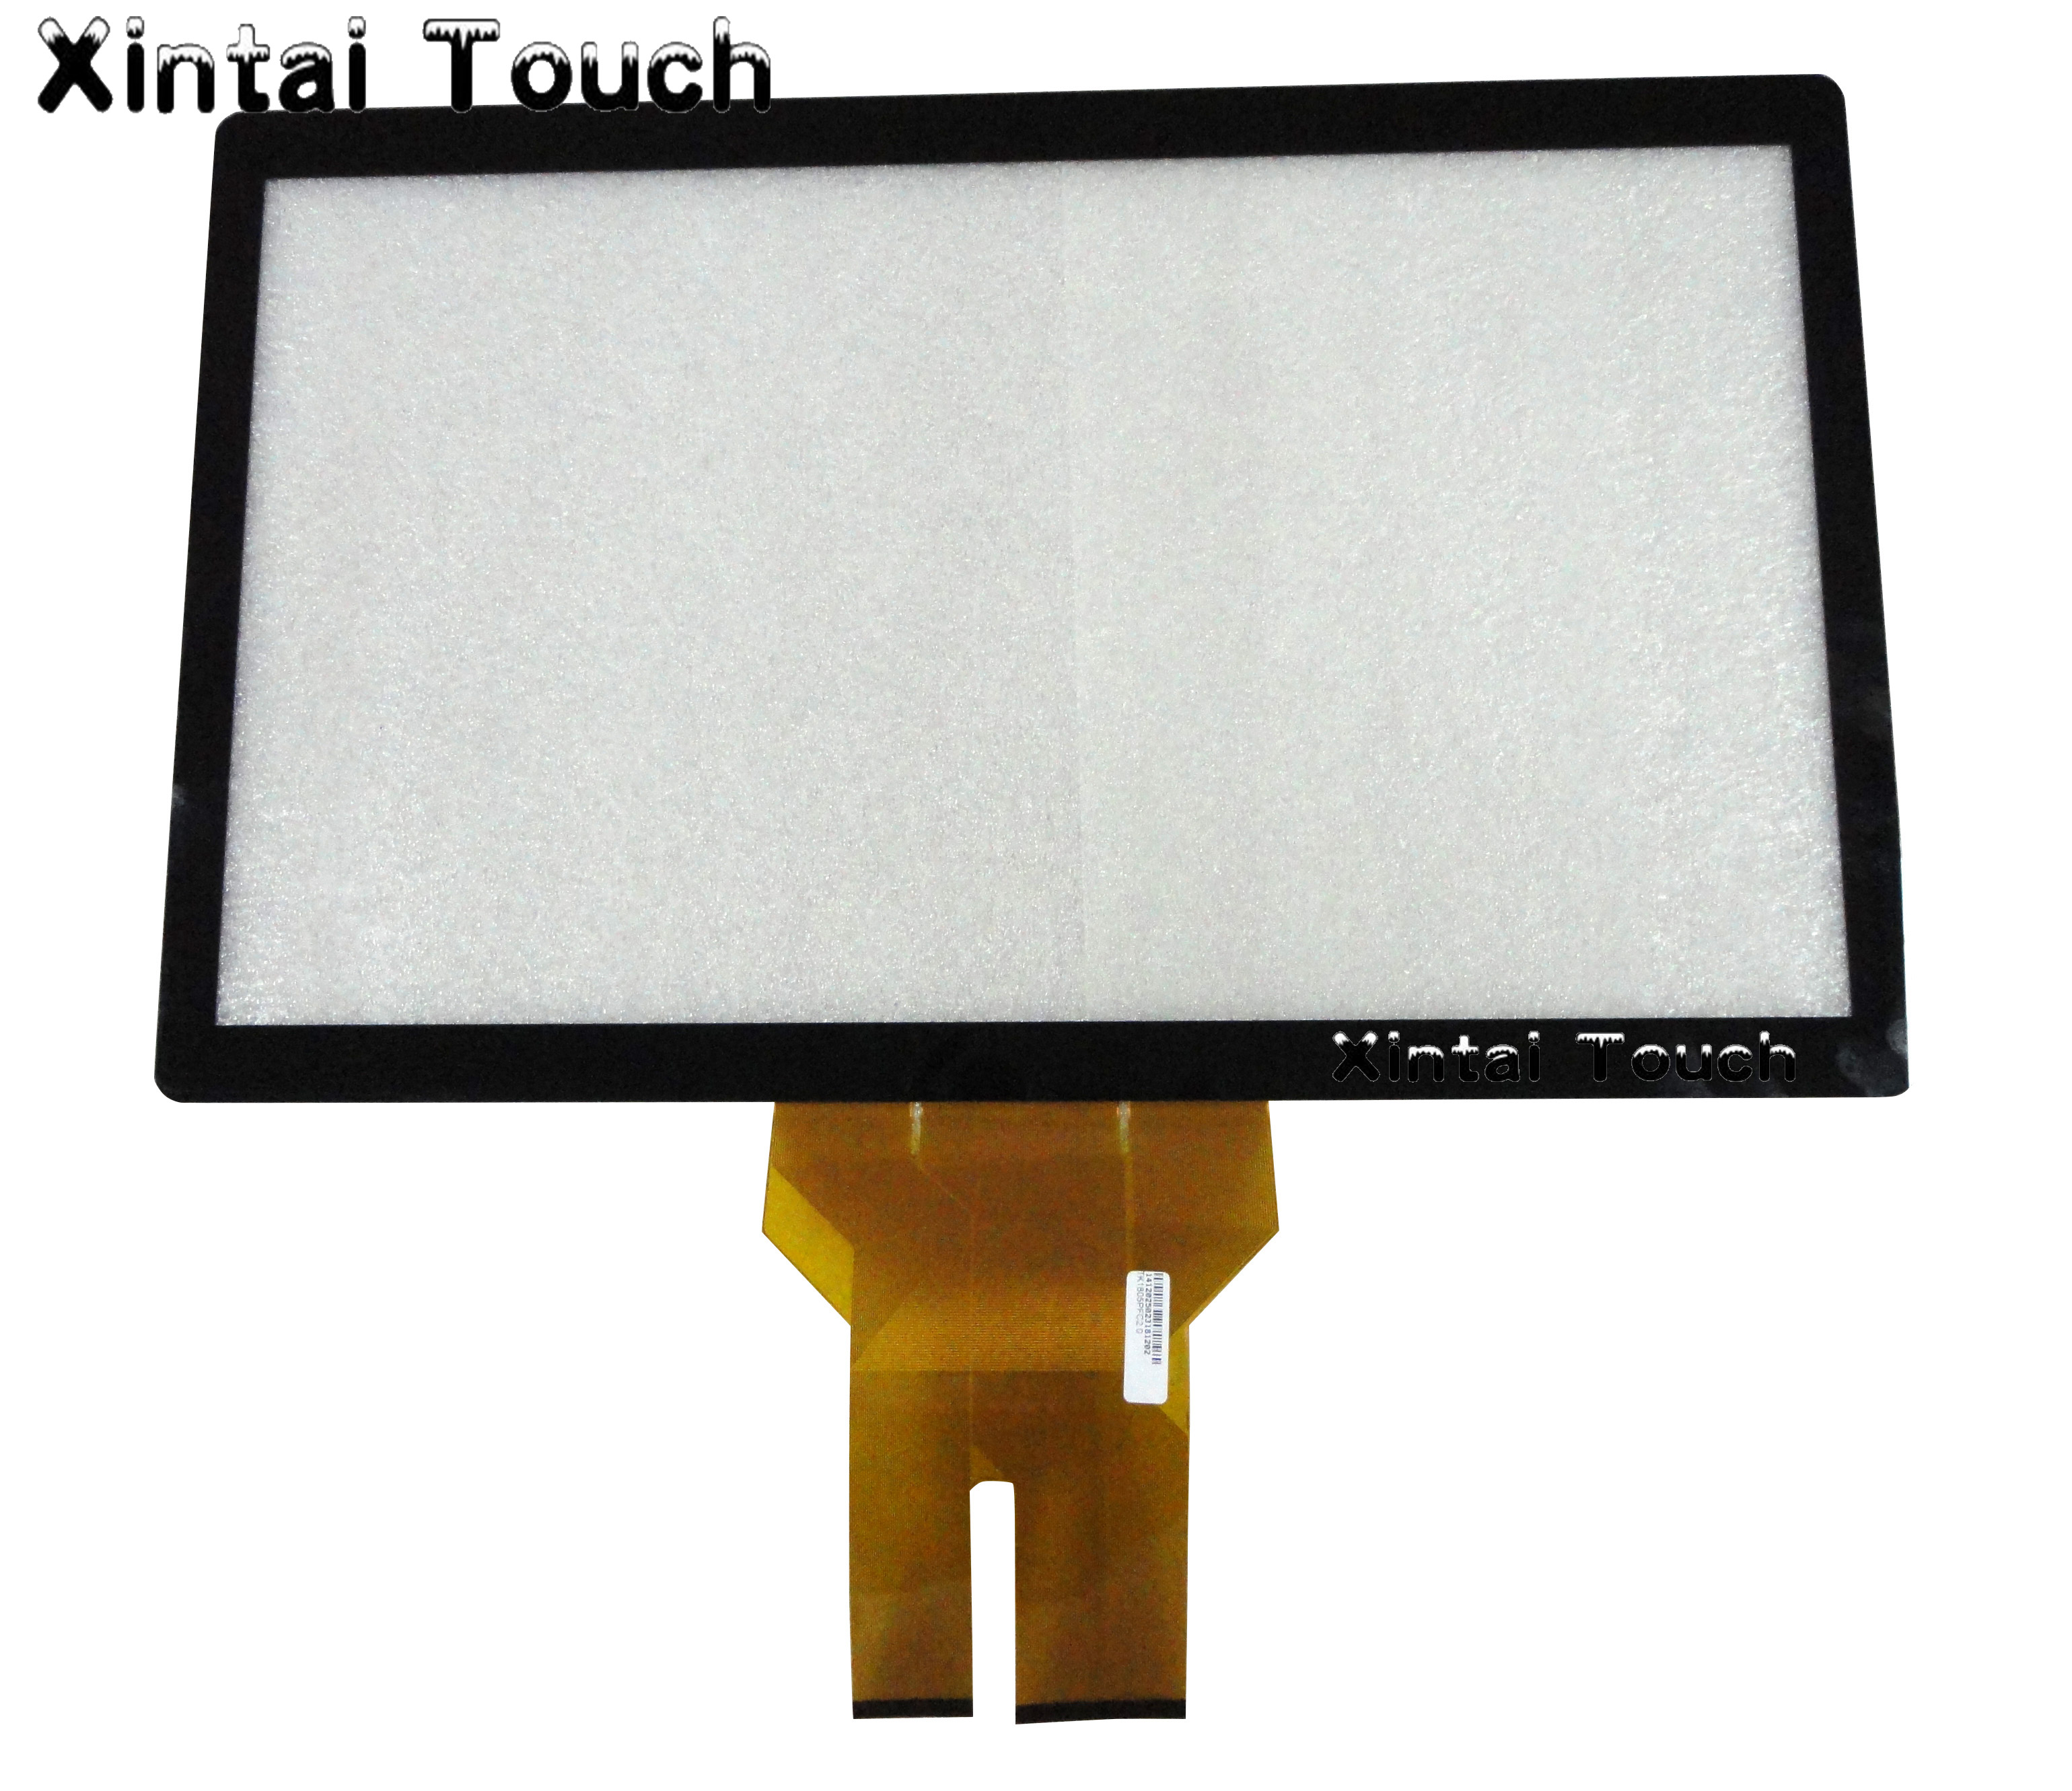 Fast Shipping! 18.5 inch 10 points cheap projected capacitive touch screen panel/kit/overlay, driver free, plug and play free shipping 20 multi ir touch frame 2 points infrared touch screen overlay kit for kiosk